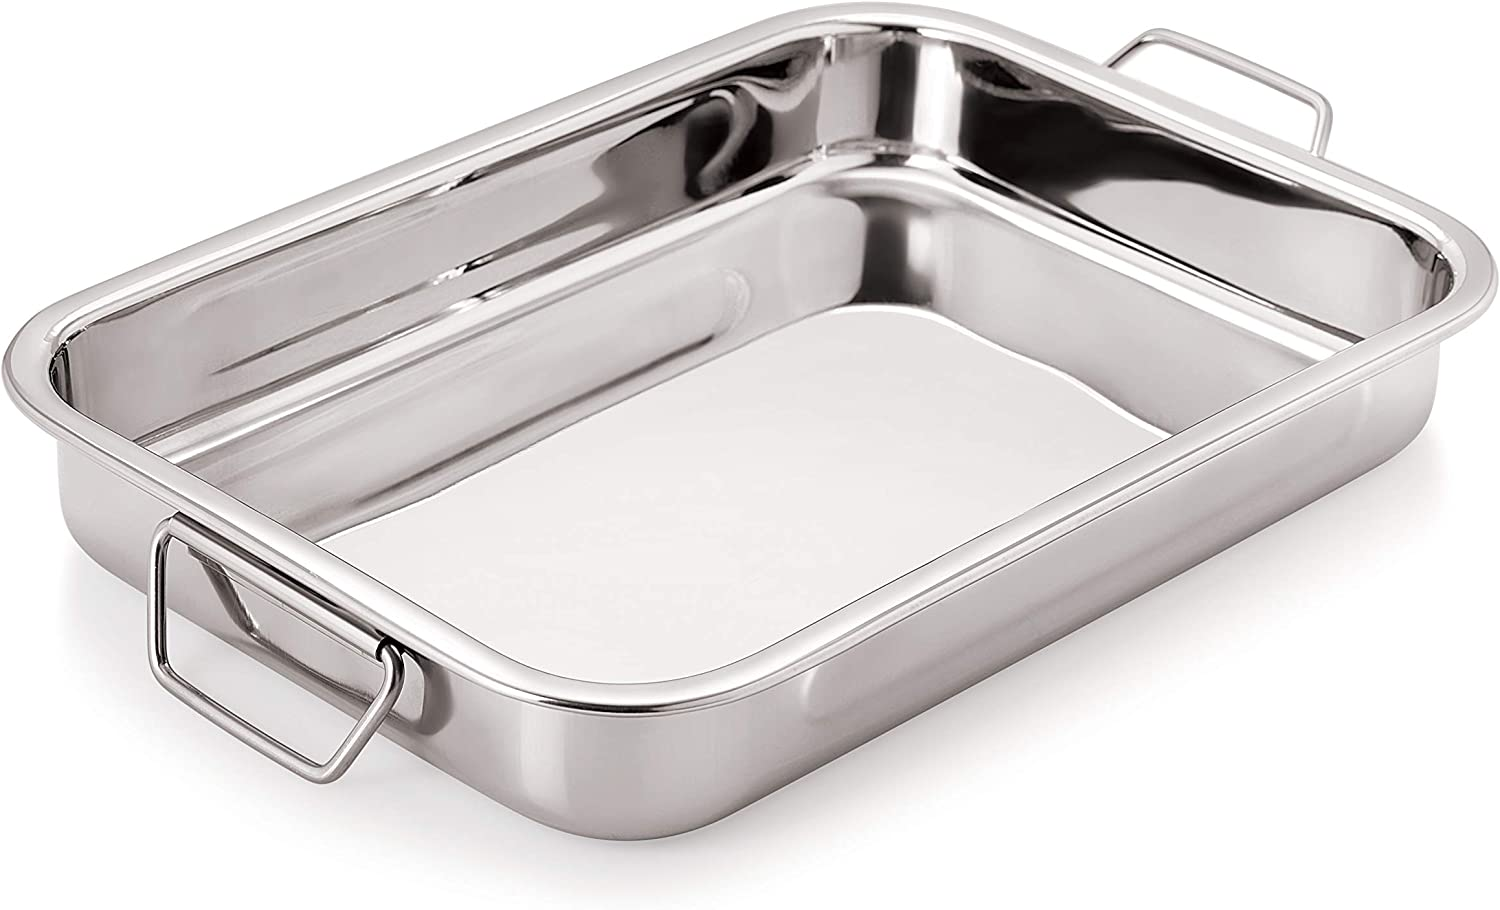 Chef Direct Stainless Steel Roast Pan with Folding Handles // Rectangular Lasagna Pan for Baking, Roasting, Grilling, OTG Oven Safe - Length 60 Cm X Width 42 Cm